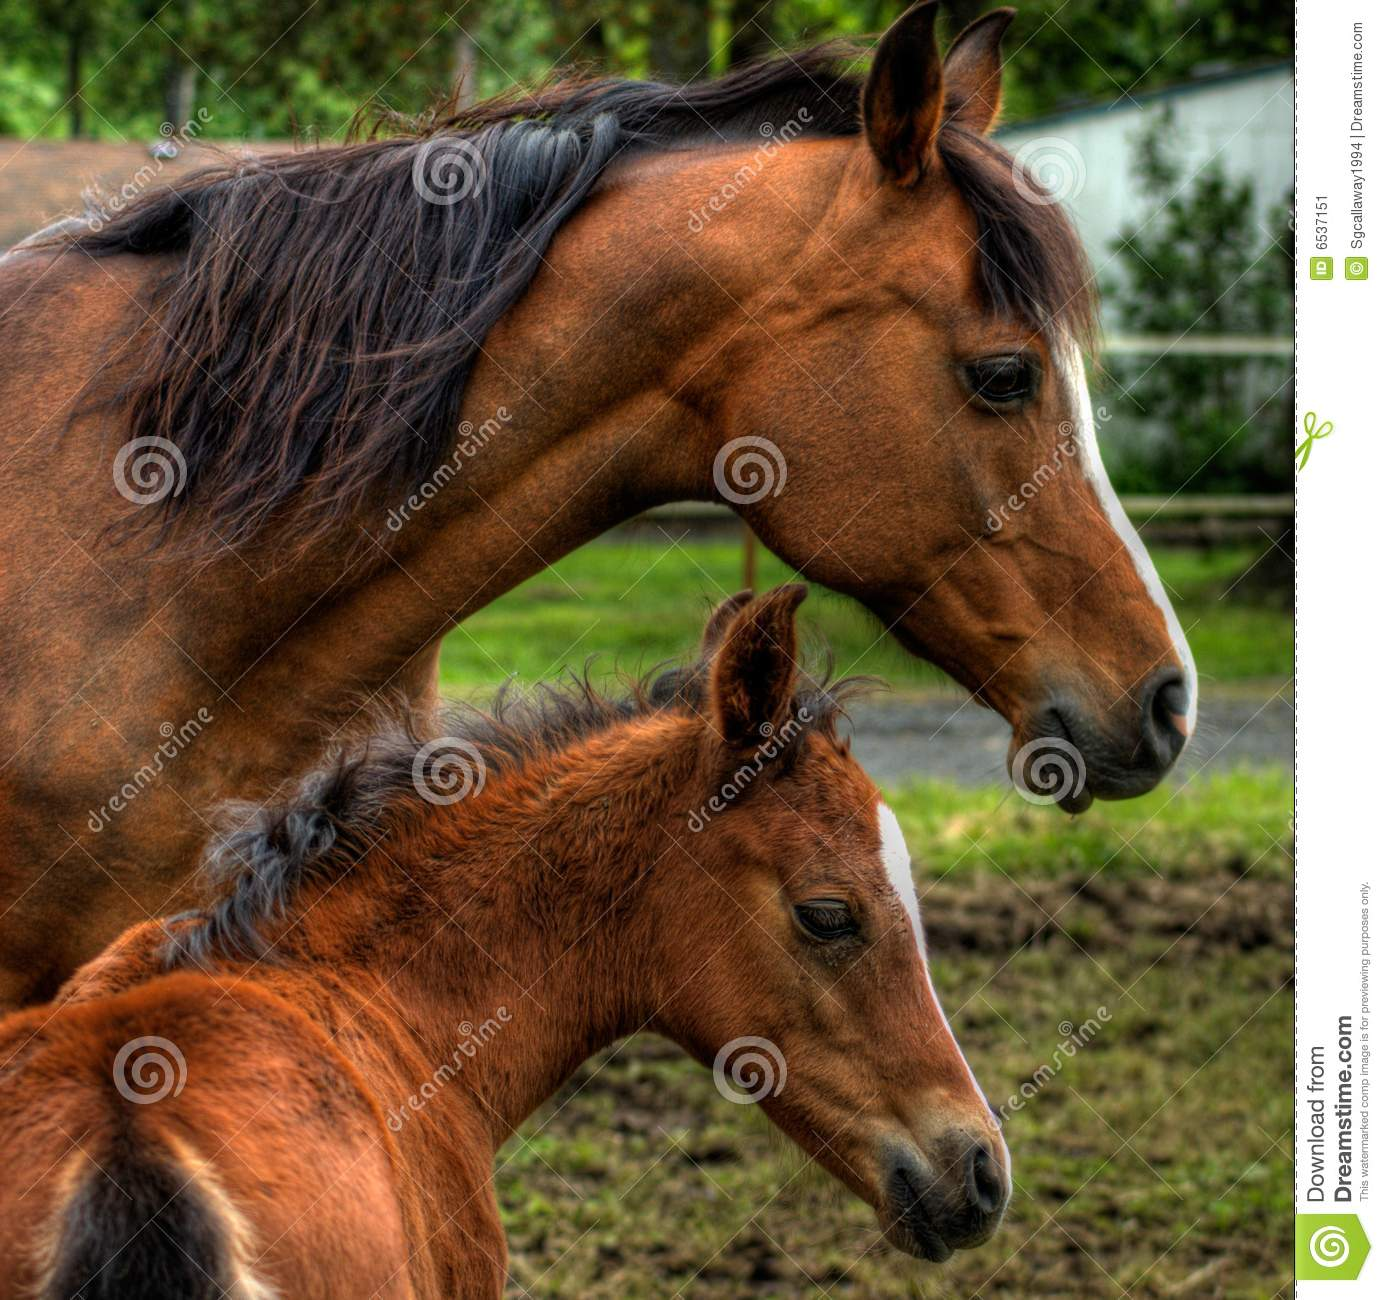 Mother Baby Horse Stock Photos, Images, & Pictures.